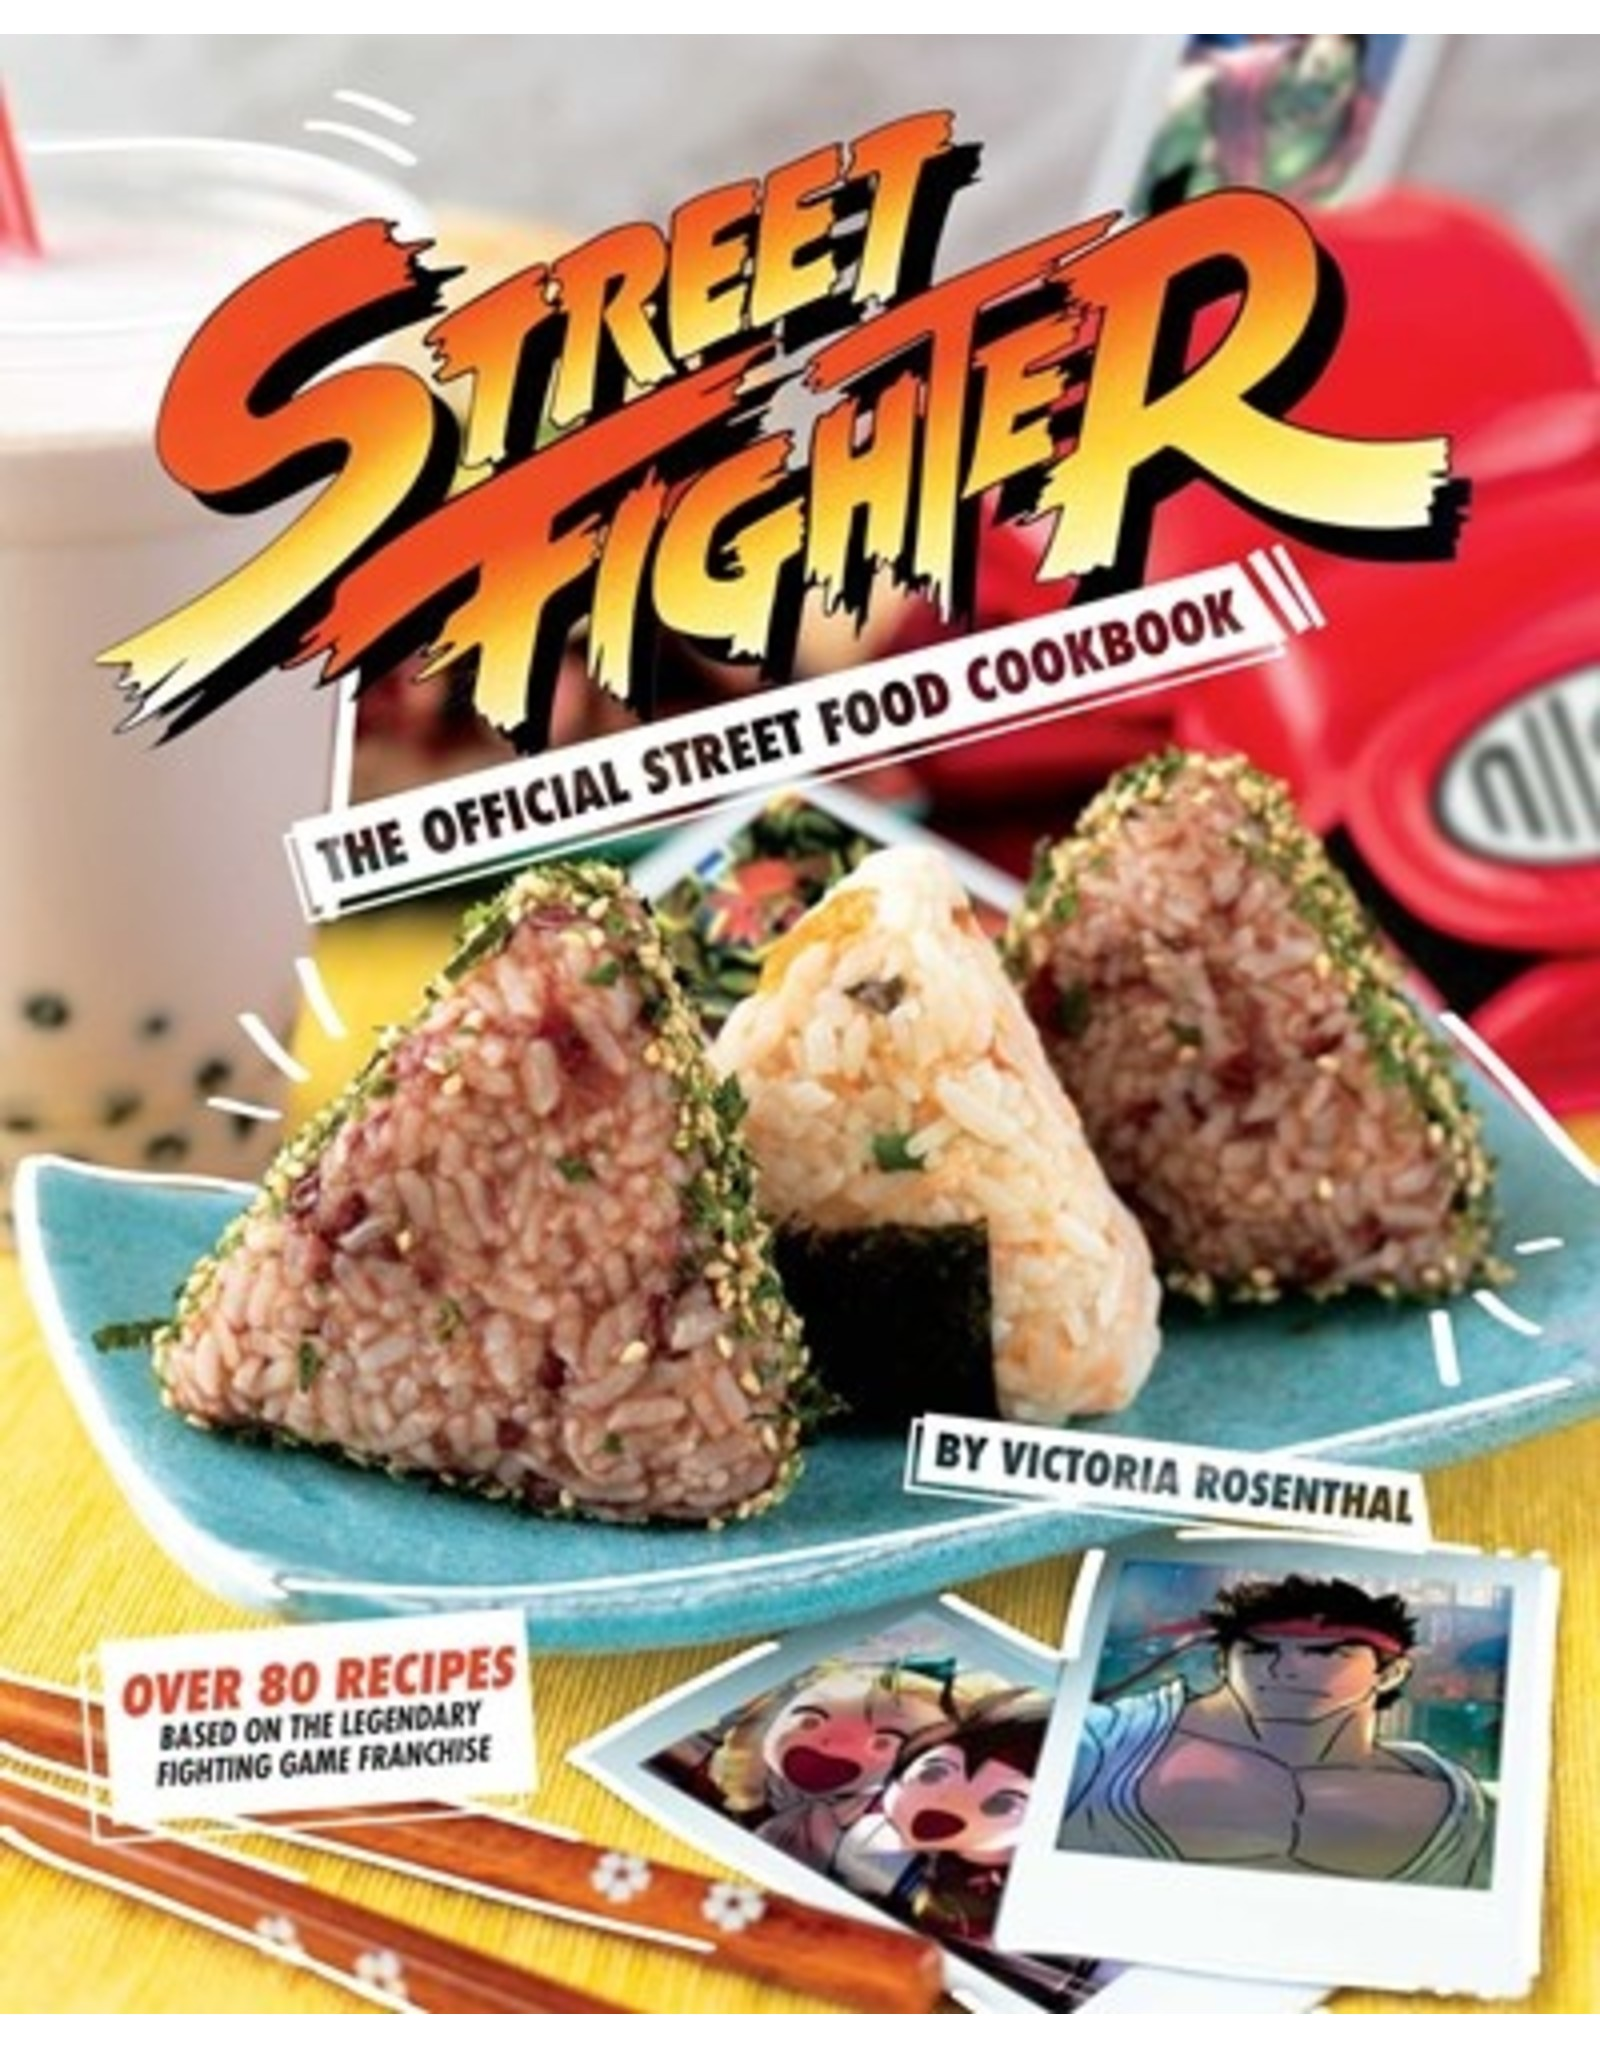 Books Street Fighter: The Official Street Food Cookbook by Victoria Rosenthal